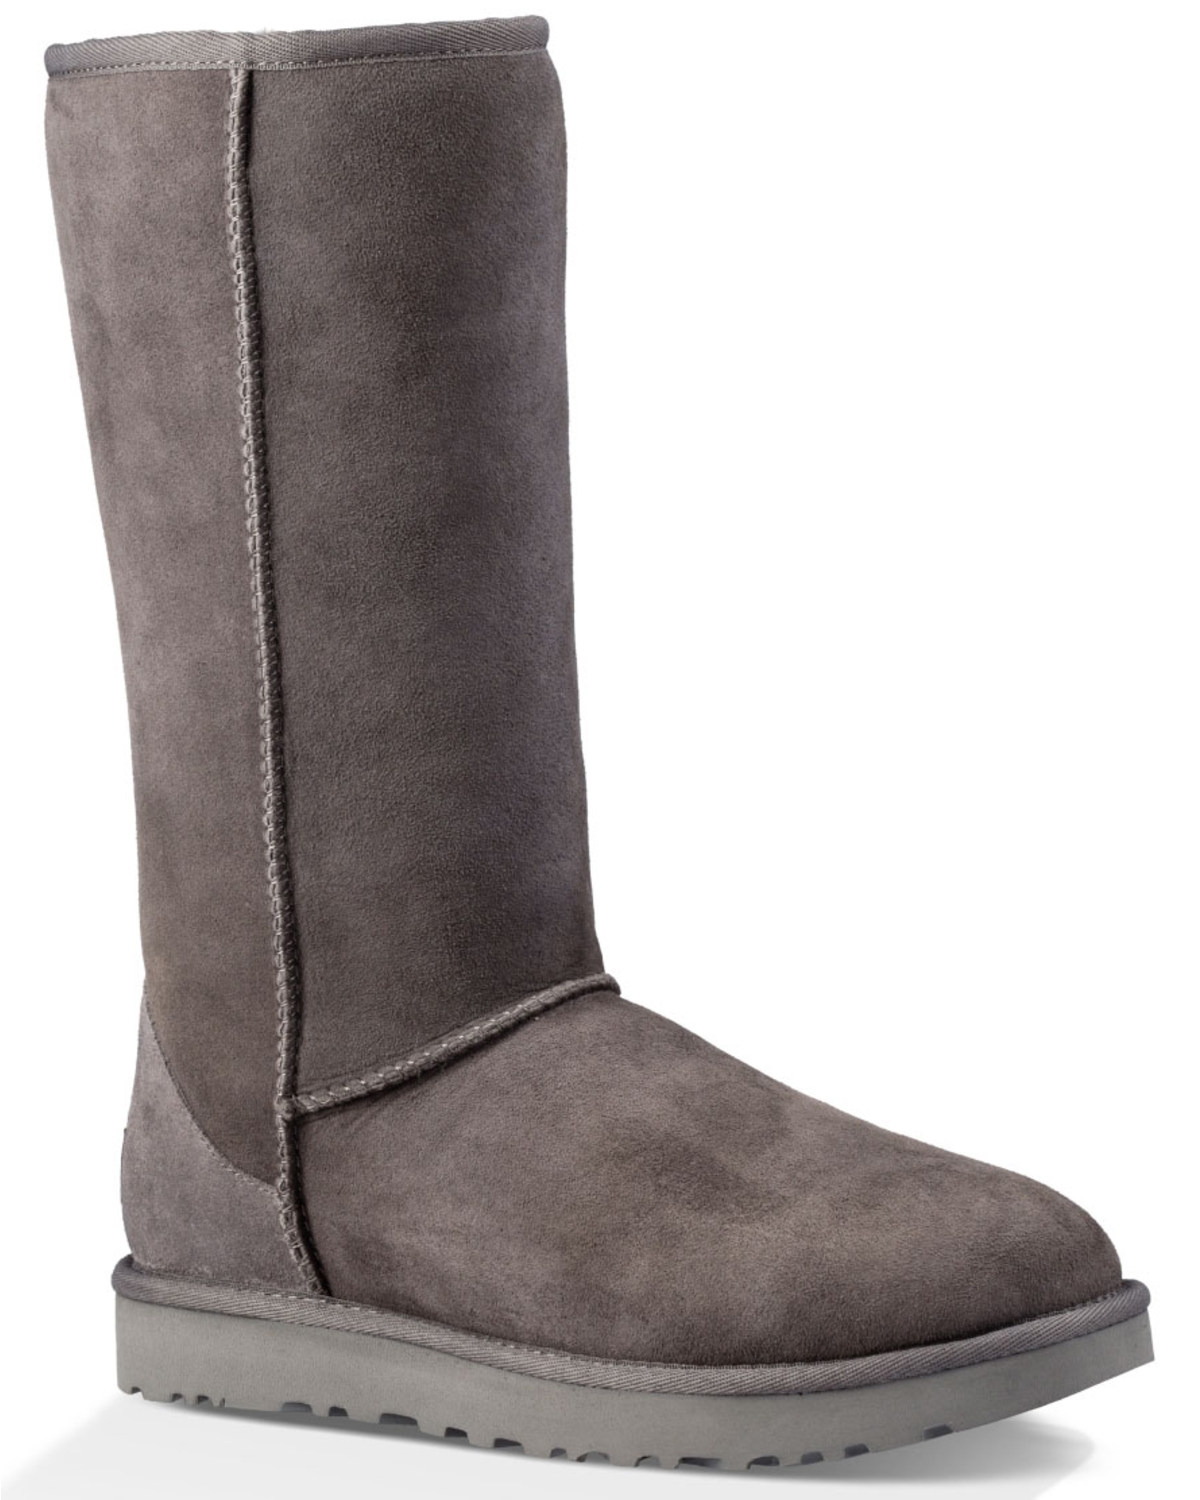 be35229abbb UGG Women's Grey Classic Tall Boots